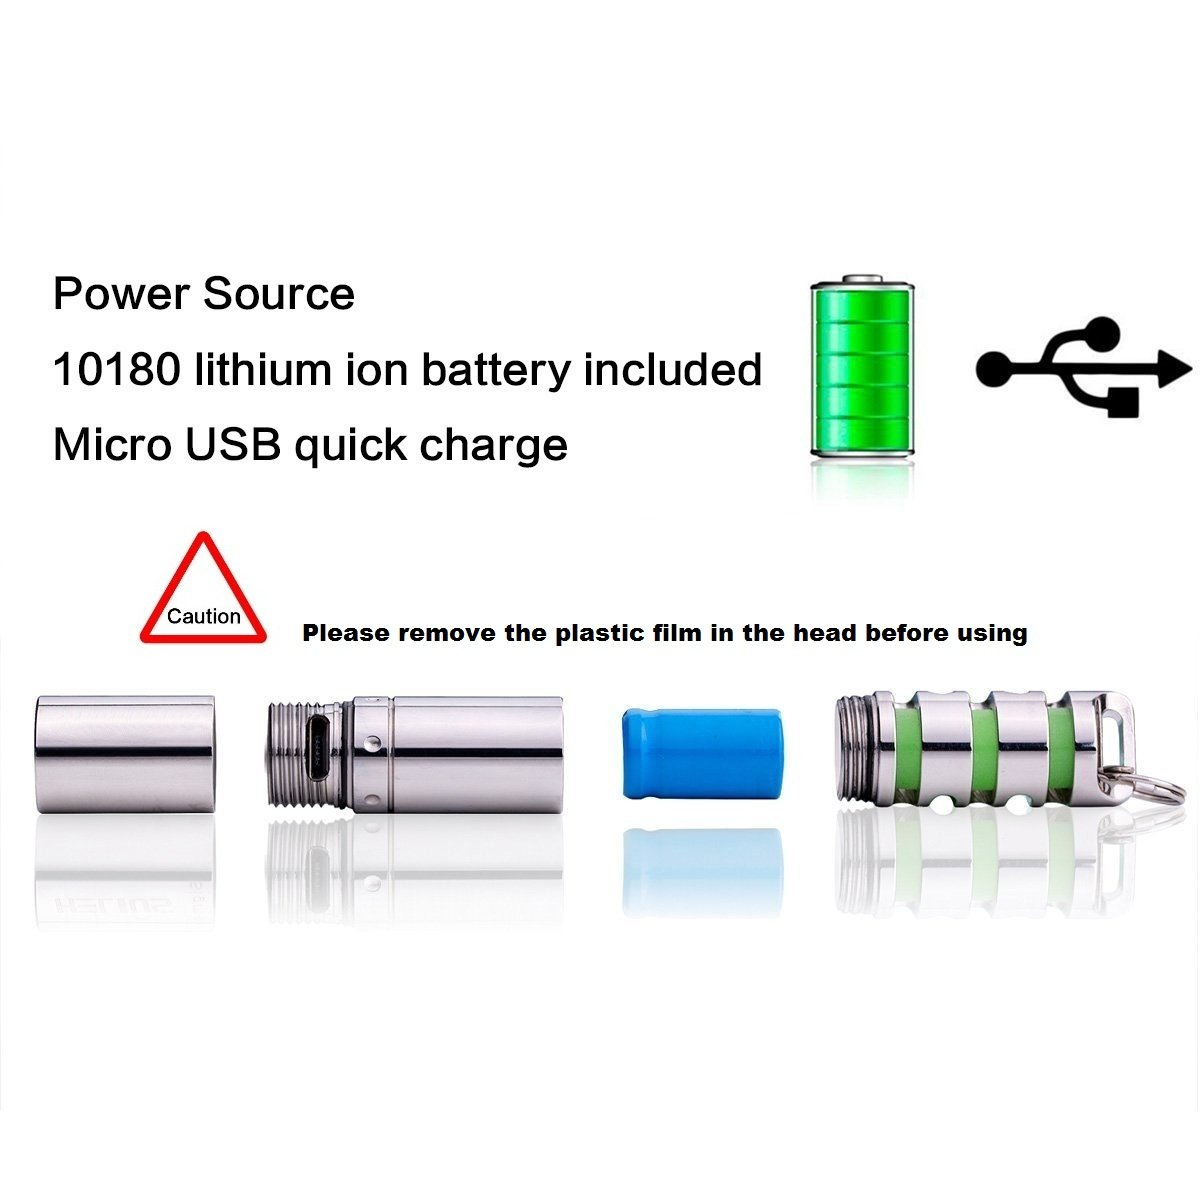 IPX8 Waterproof Shockproof,High Low 130 Lumen 2 Mode+10180 battery Mini Portable Outdoor Camping Cree LED USB Rechargeable Keychain Flashlight,Small Gift Emergency XP-G2 Keyring Torch Light